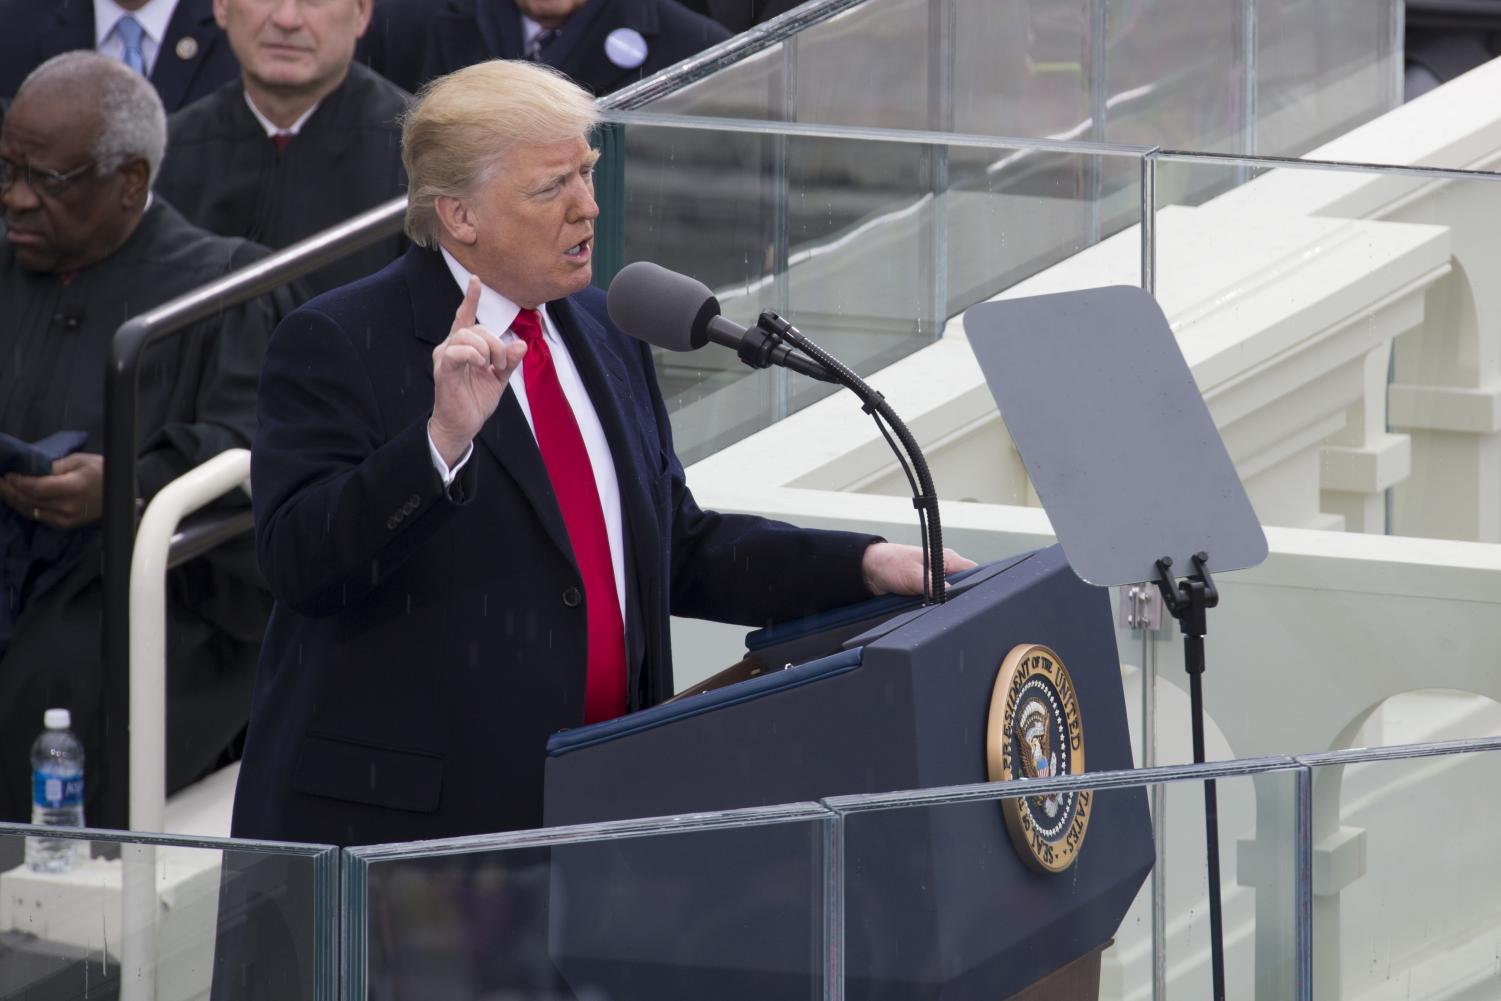 Addressing the Audience Donald Trump makes his inauguration speech after becoming the President of the United States.